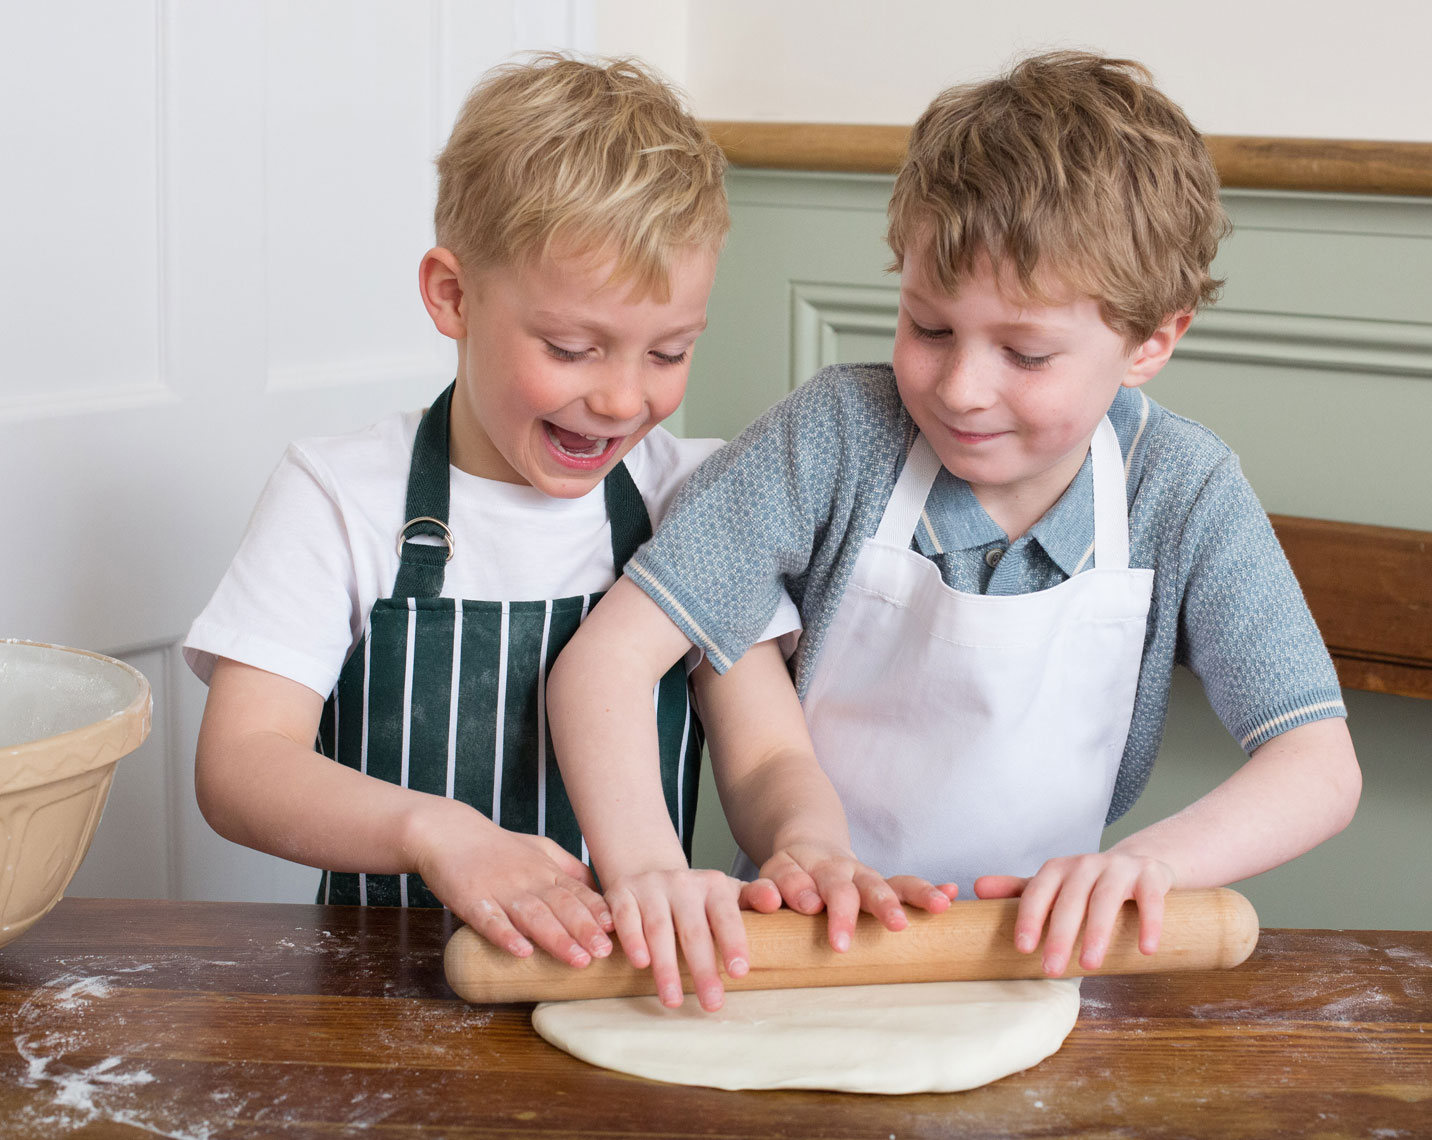 BOYS-ROLLING-DOUGH